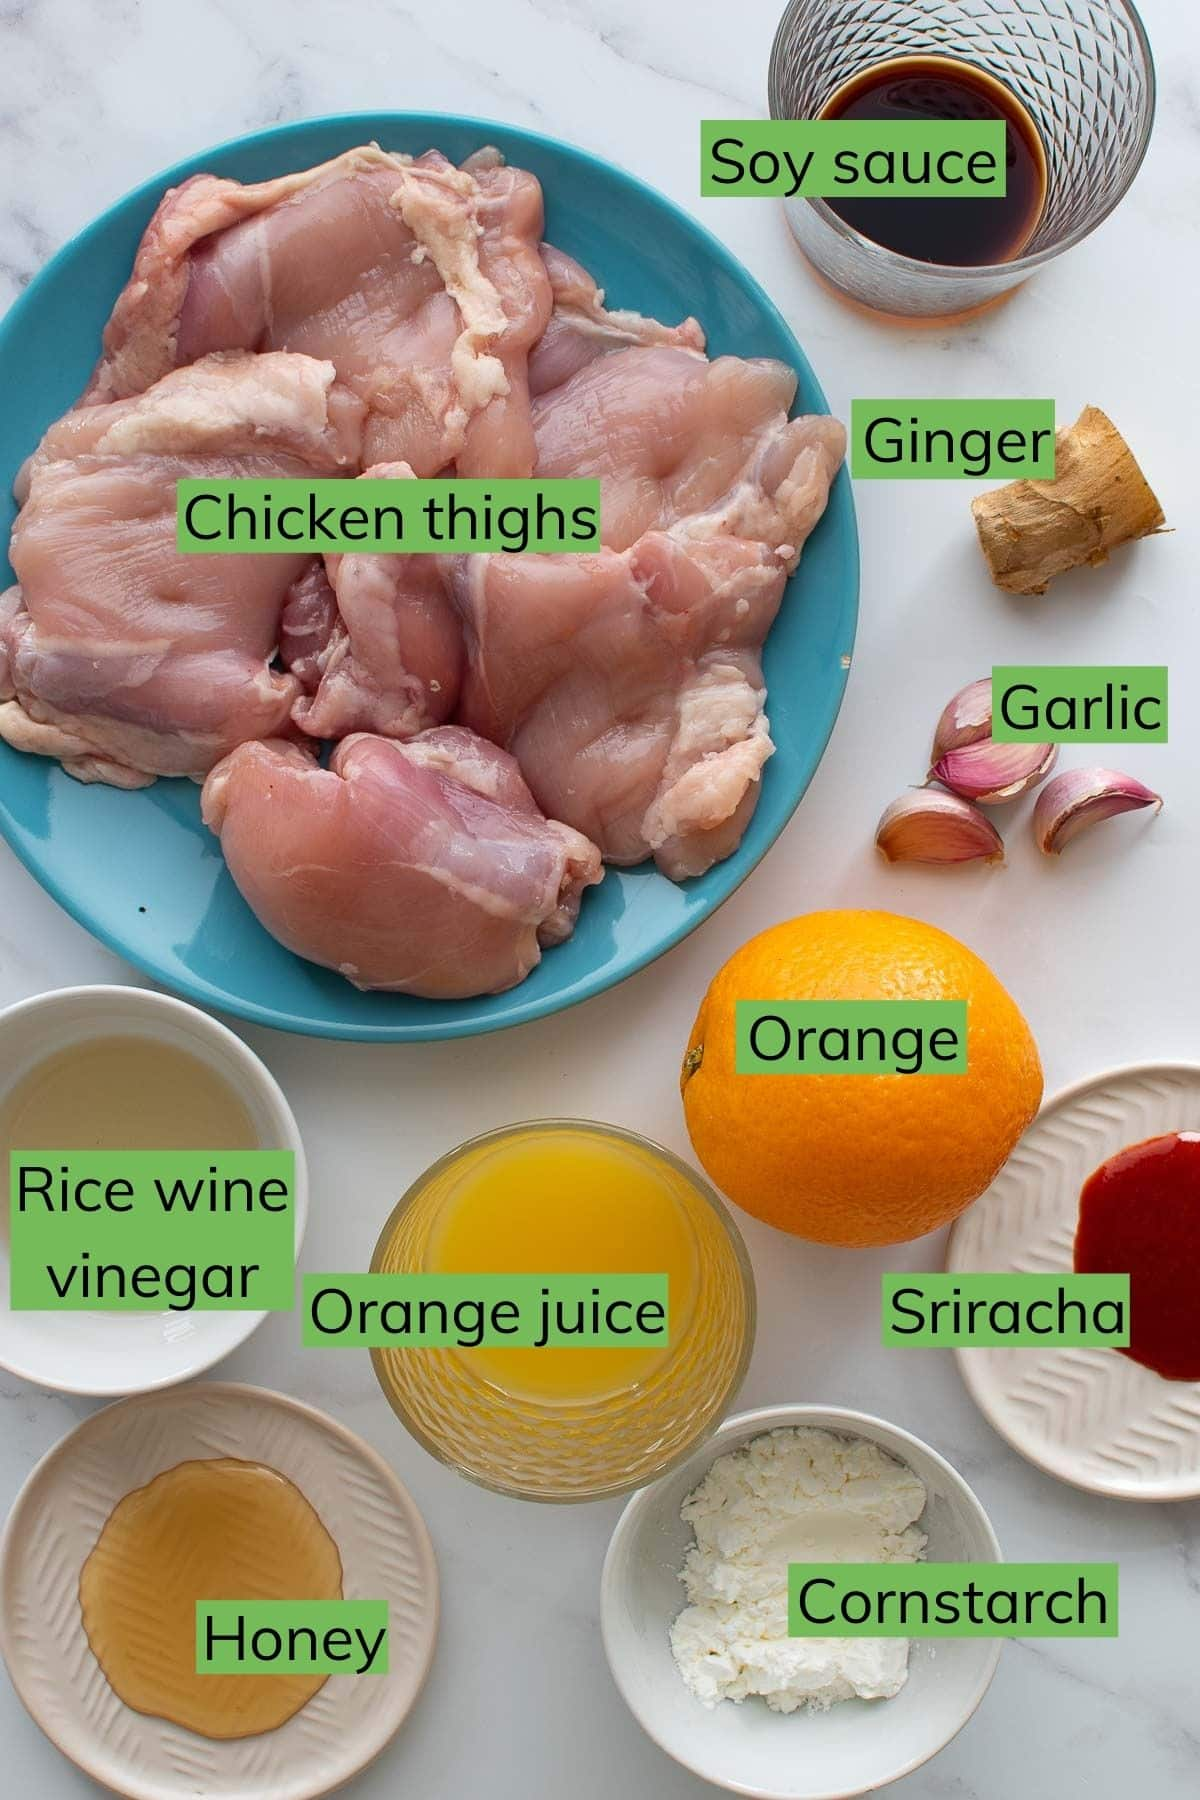 Ingredients for Instant Pot Orange Chicken laid out on a table.